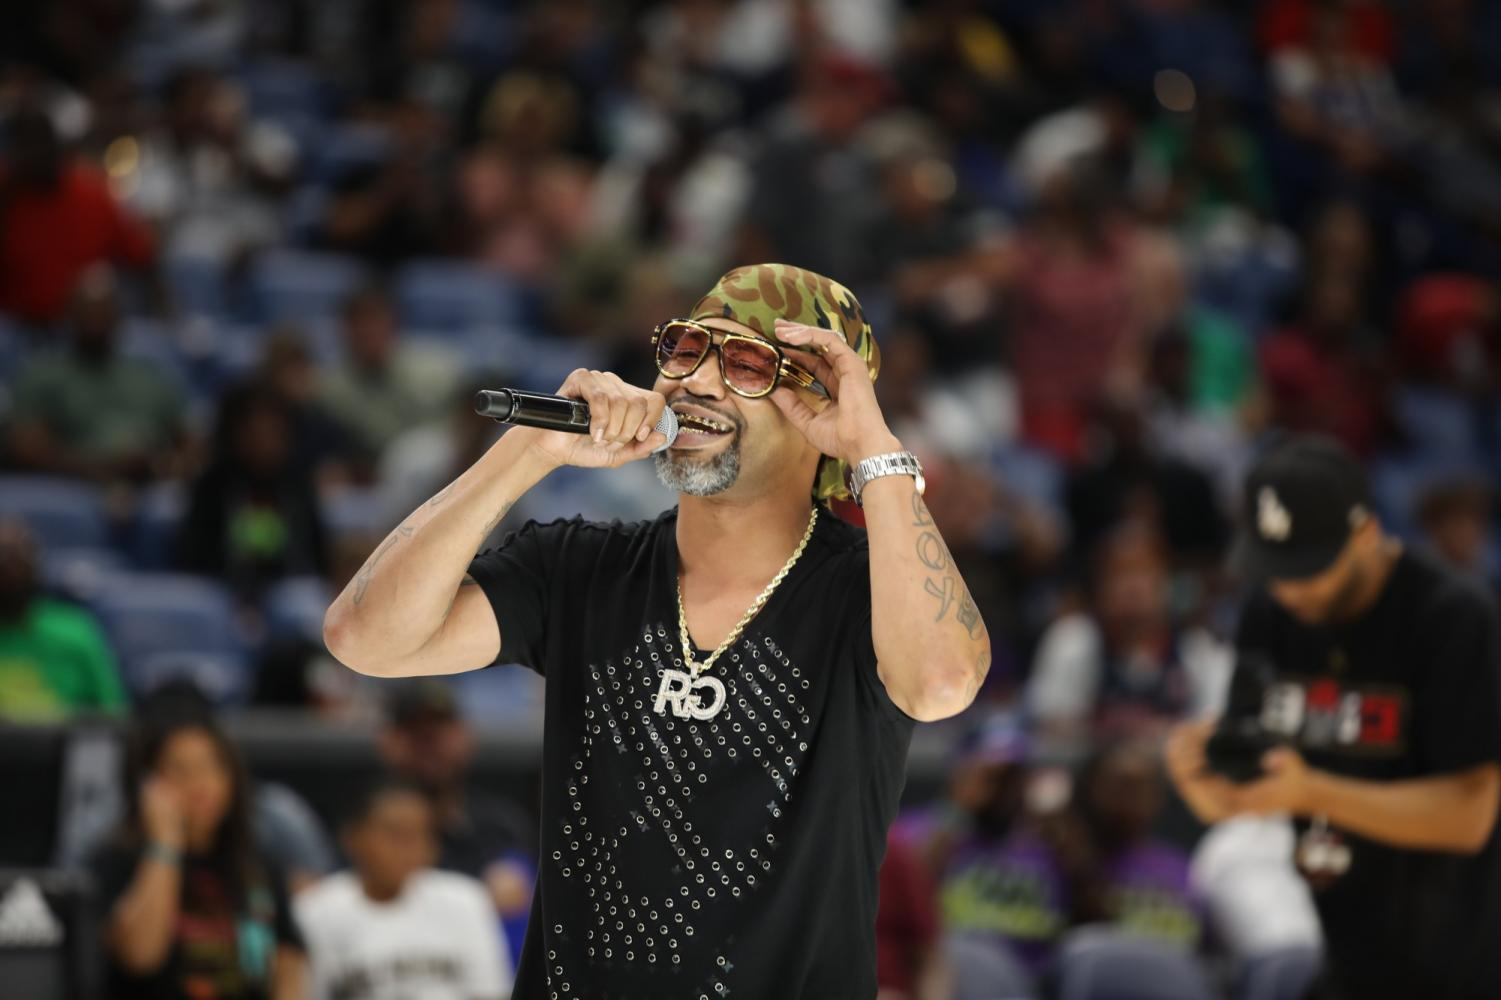 New+Orleans+rapper+Juvenile+rapped+for+the+crowd+following+the+3%27s+Company+vs.+Bivouac+match+on+August+25%2C+2019.+The+BIG3+playoffs+drew+in+celebrities+such+as+Alvin+Gentry+and+David+Griffin.+Photo+credit%3A+Andres+Fuentes